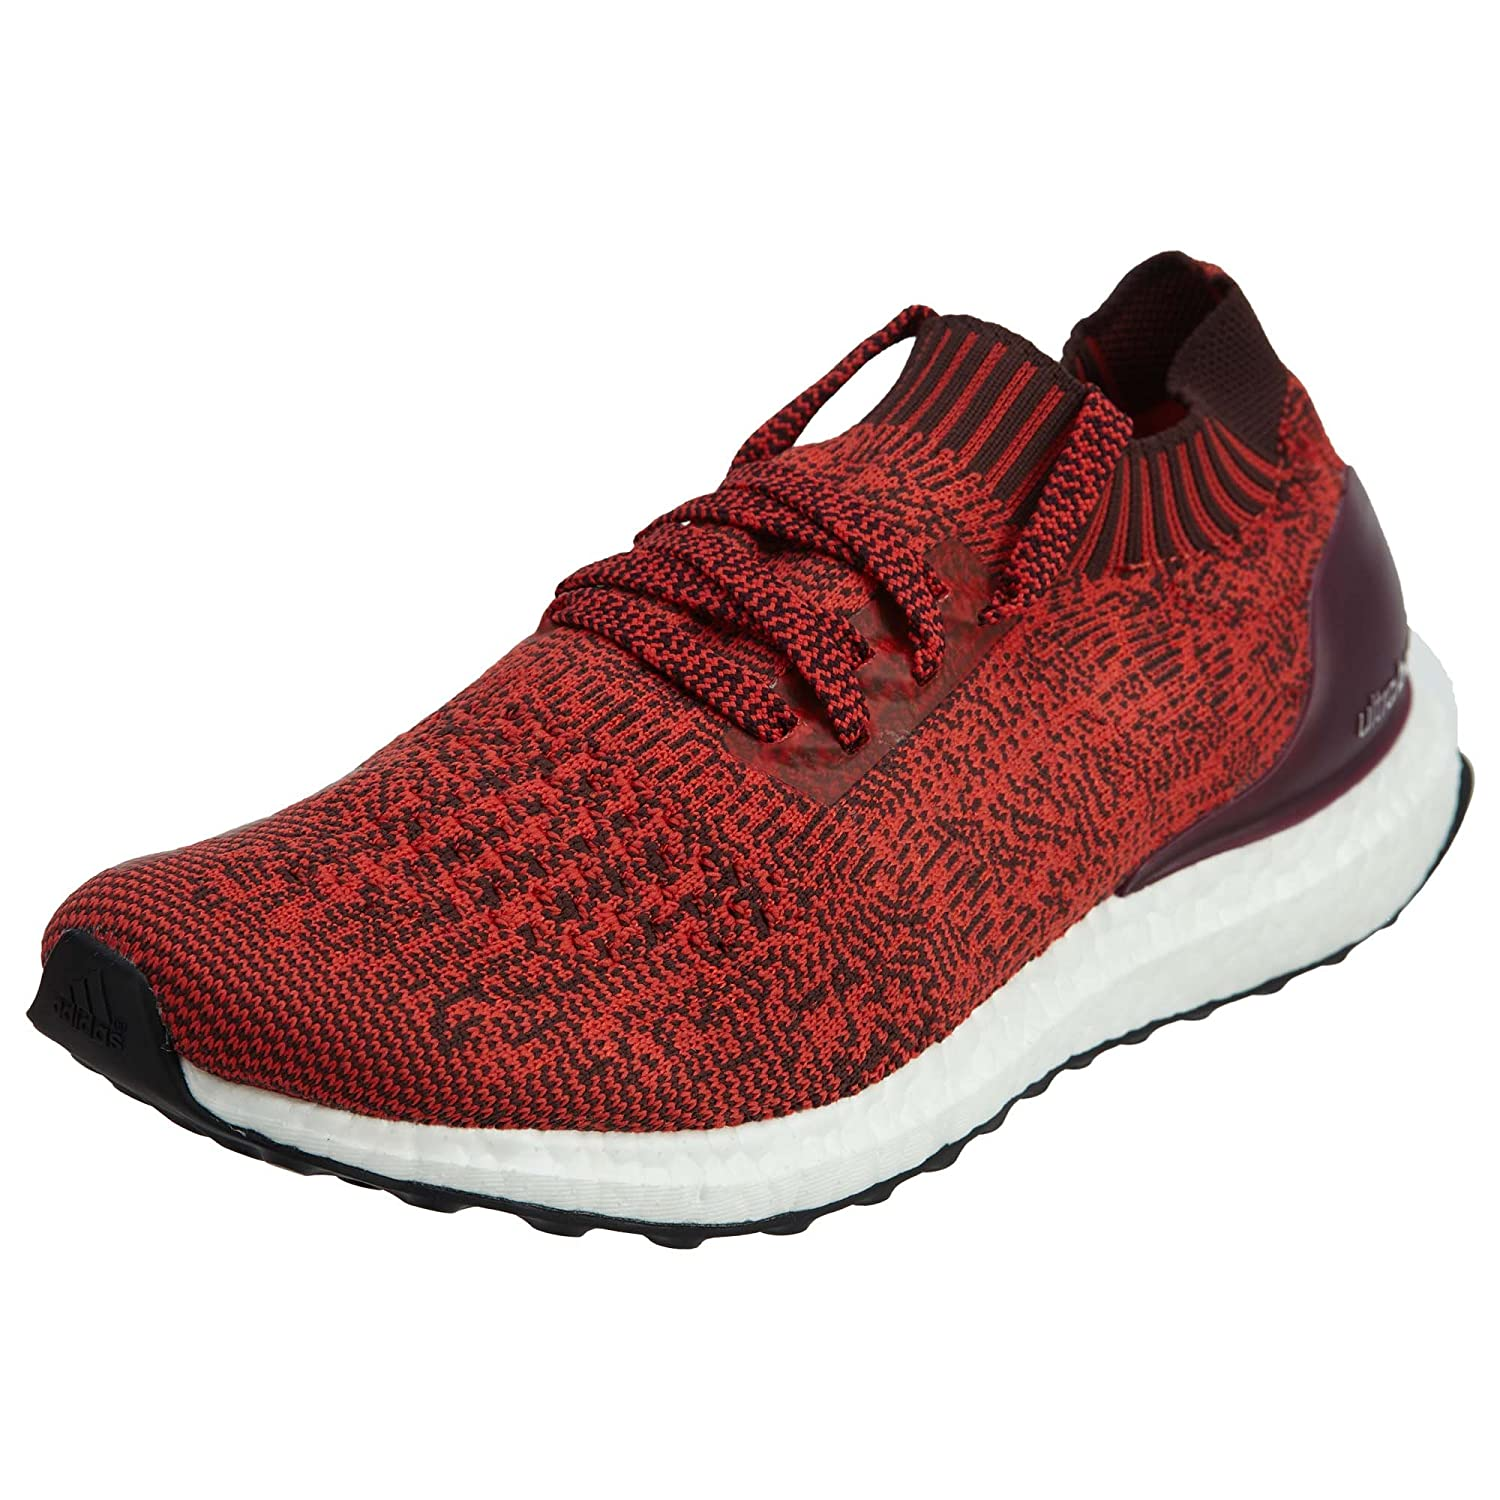 ULTRABOOST UNCAGED SIZE - BY2554 - SIZE UNCAGED 7.5 B073RQ2BN3 9f590f